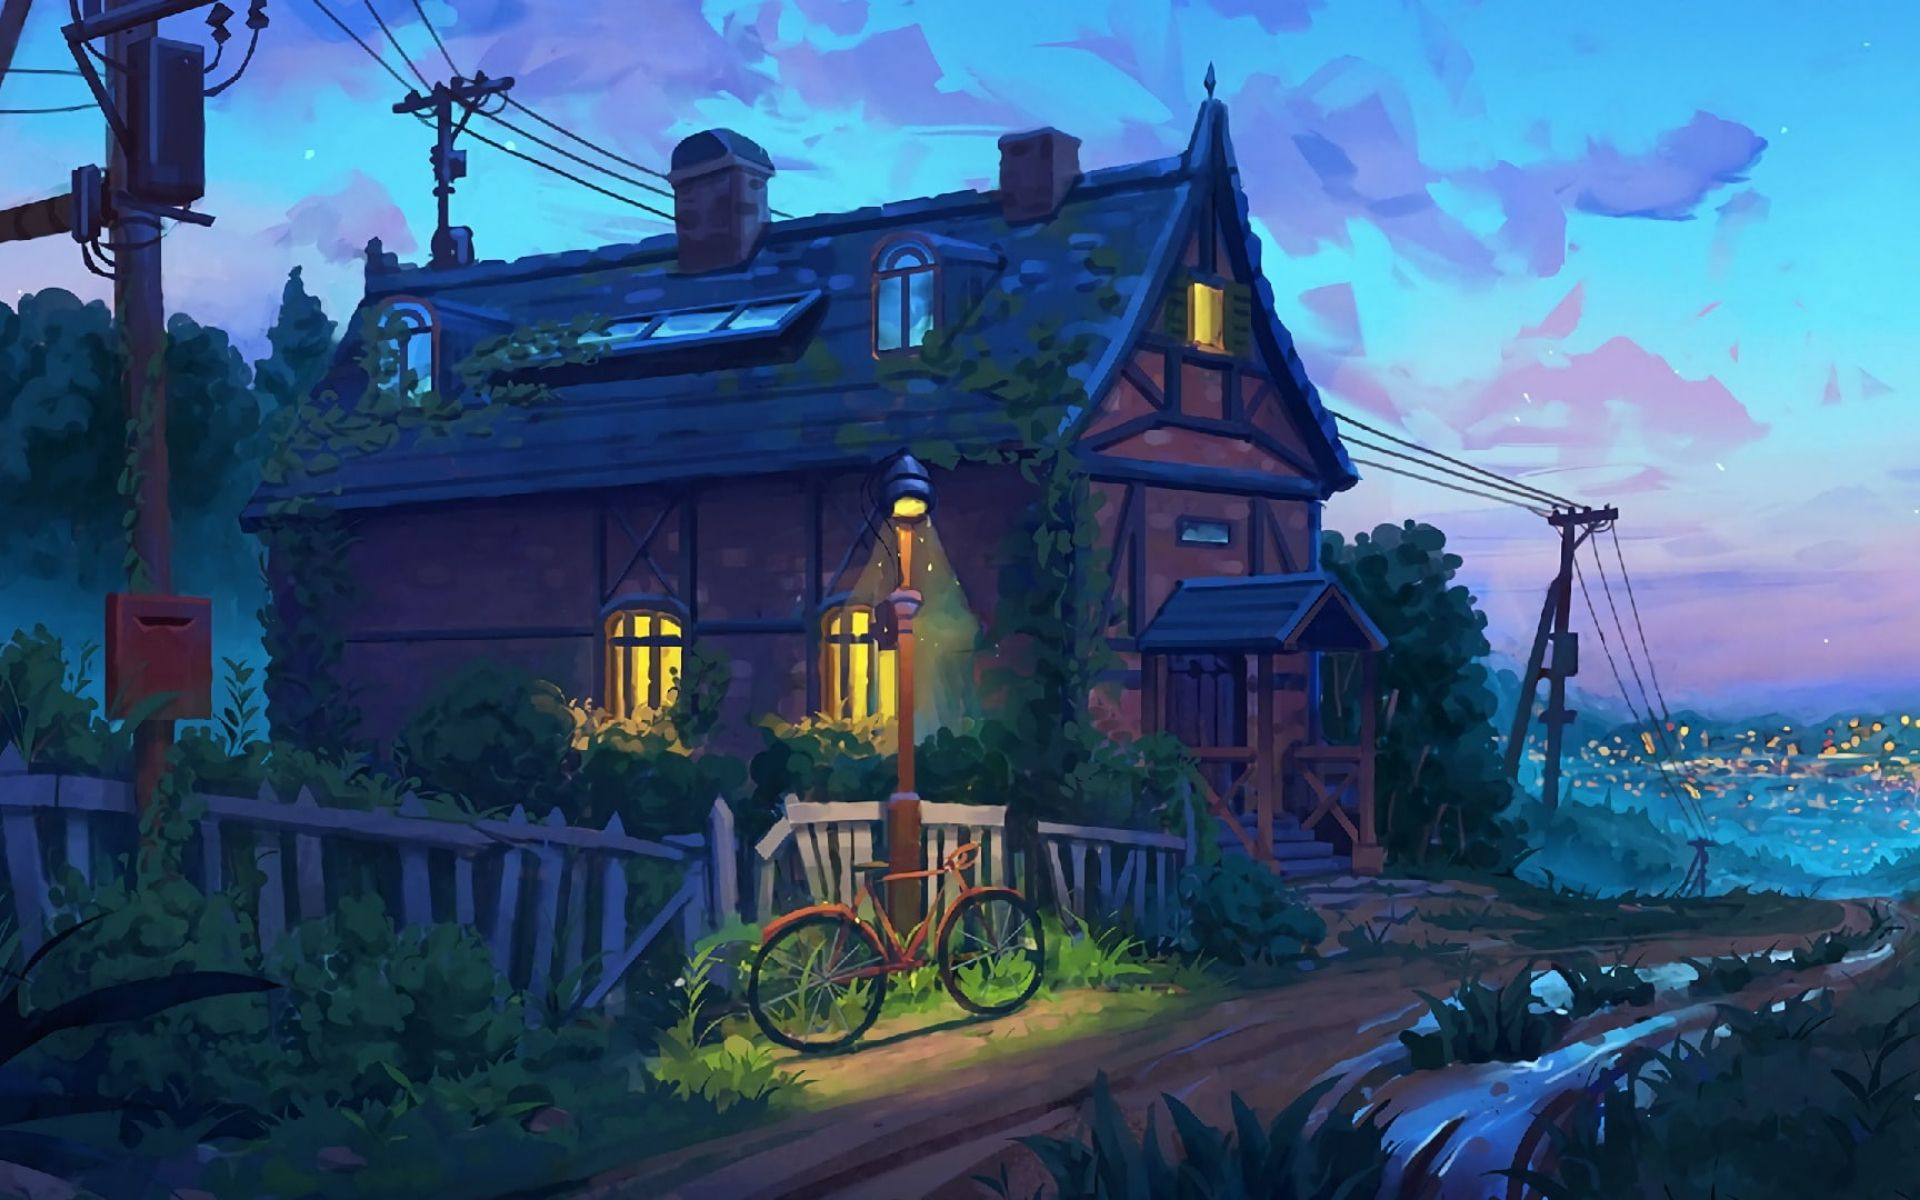 1920x1200px Free Download Hd Wallpaper House Painting Bycicle Bike Concept Art Cottage Digital Pai Digital Painting Art Wallpaper Painting Wallpaper